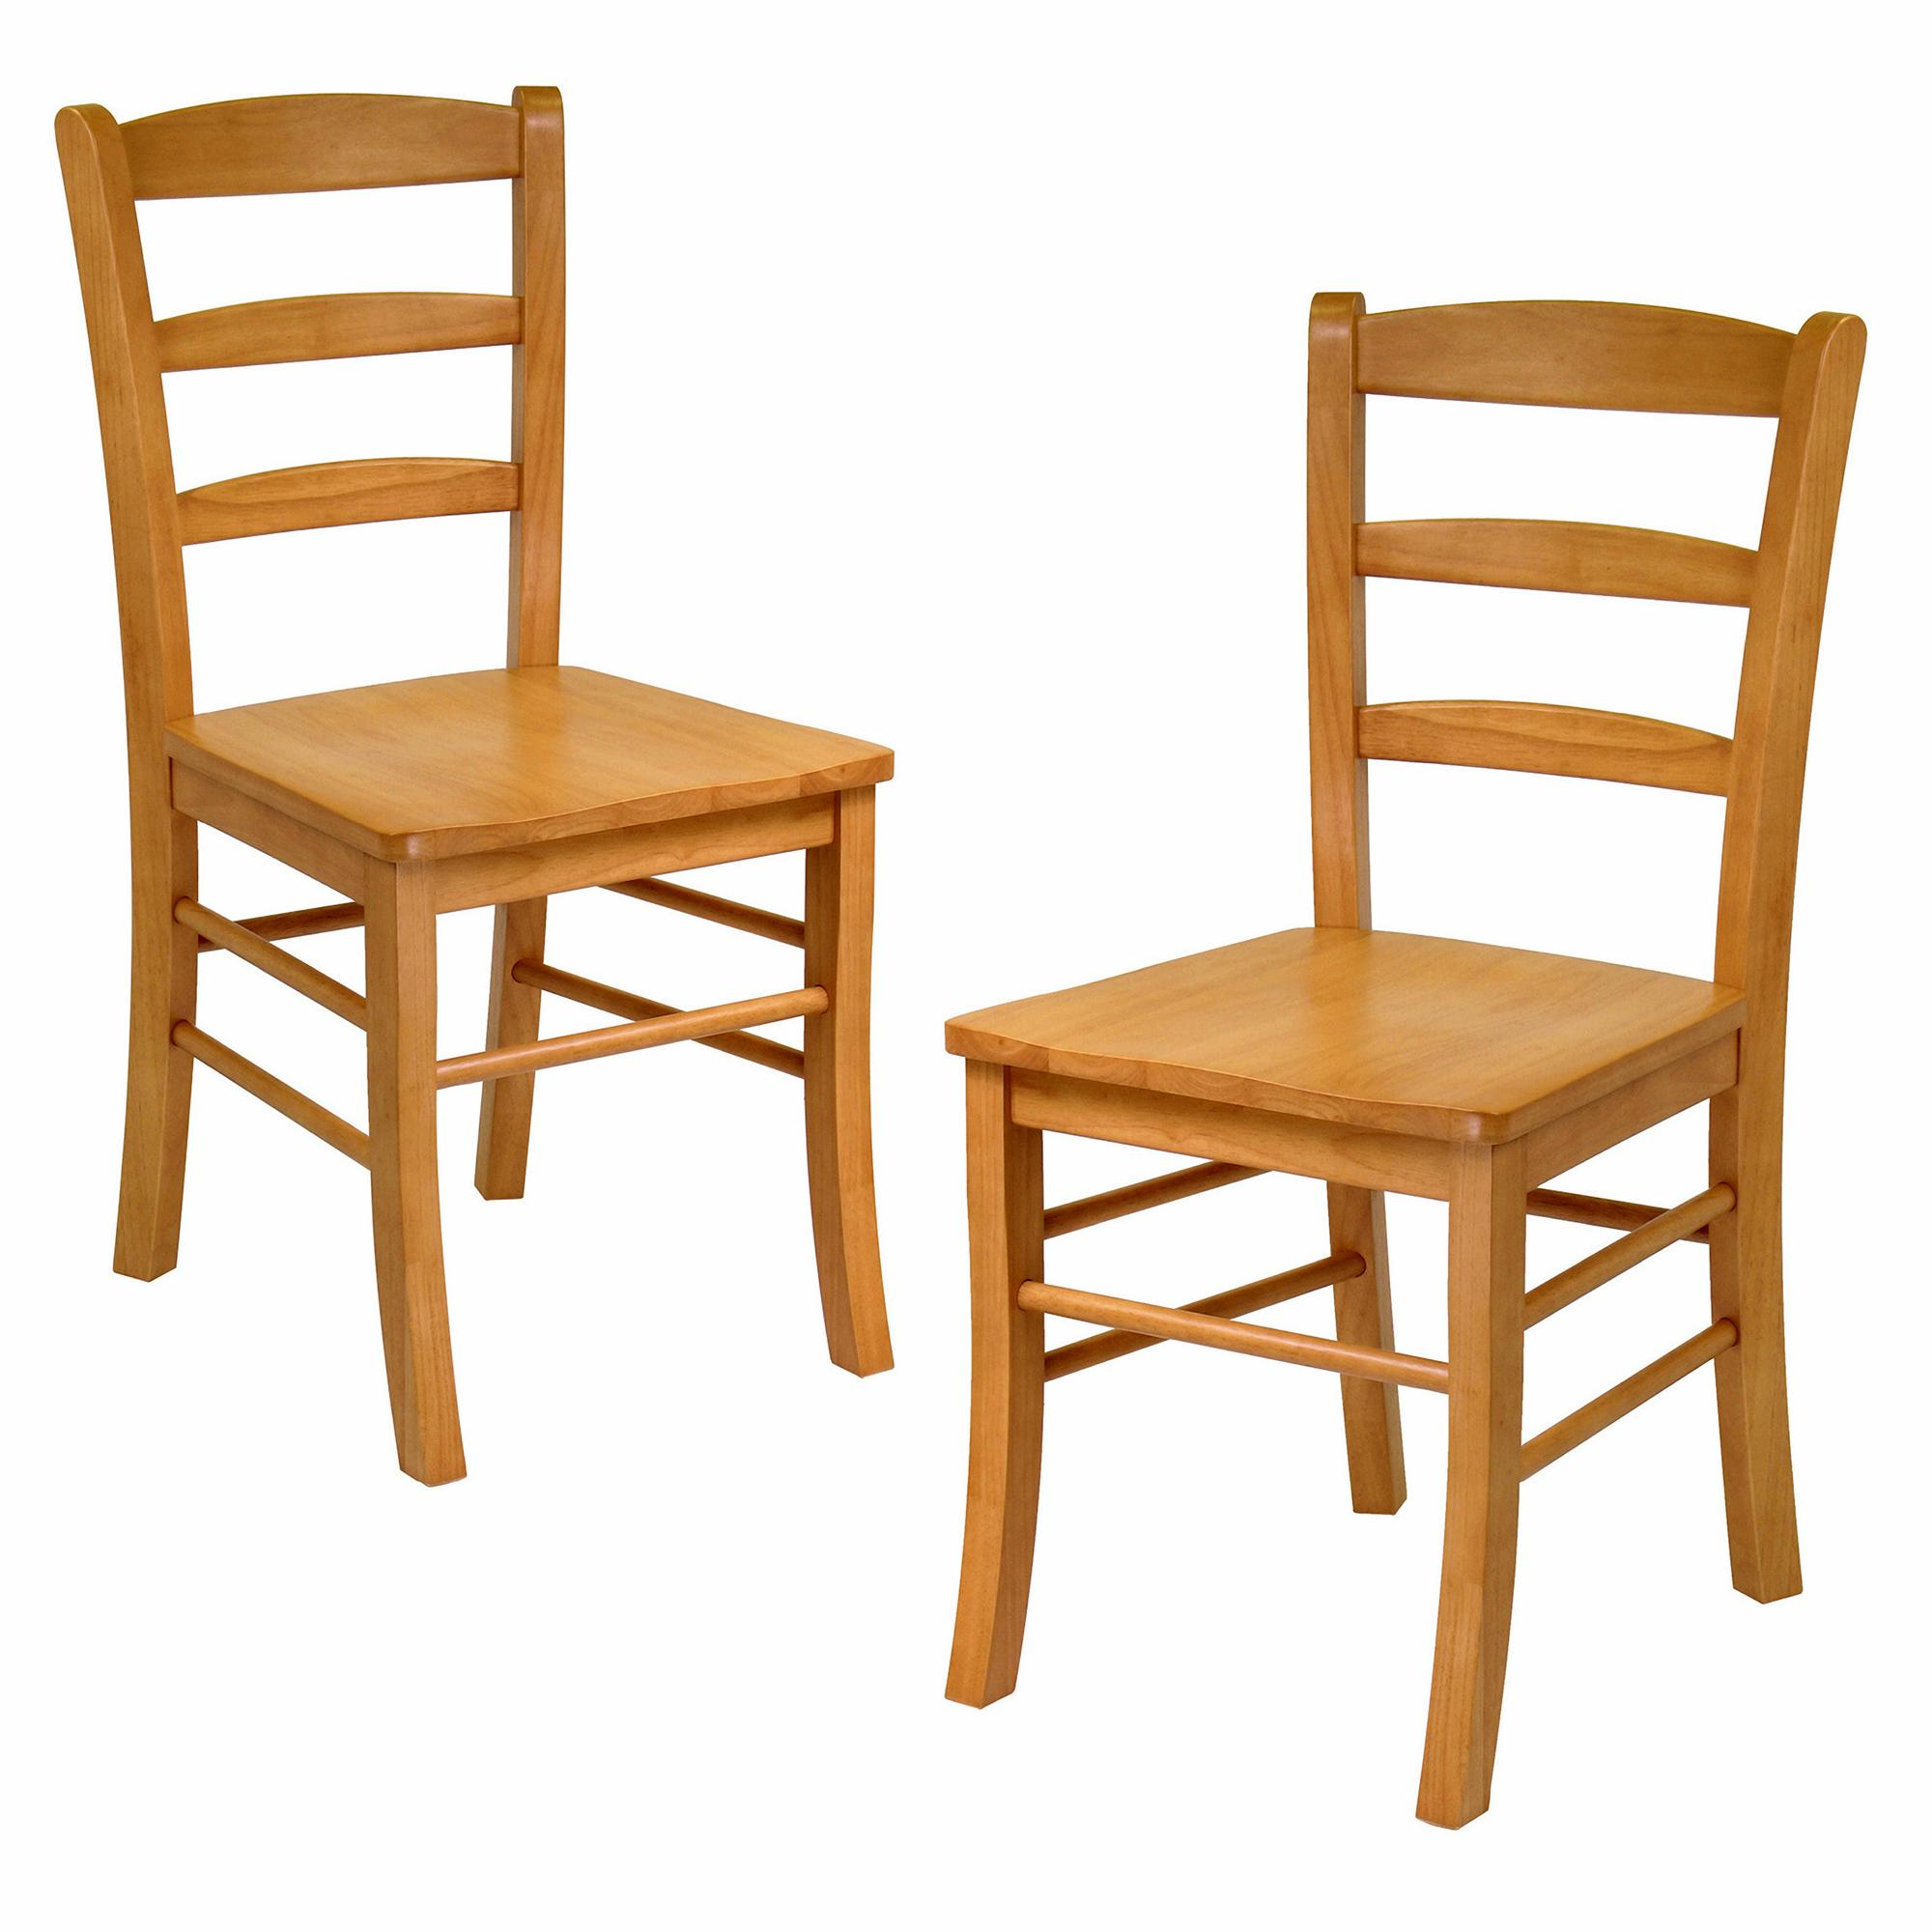 Chairs For The Kitchen: Amazon.com: Winsome Wood Ladder Back Chair, Light Oak, Set